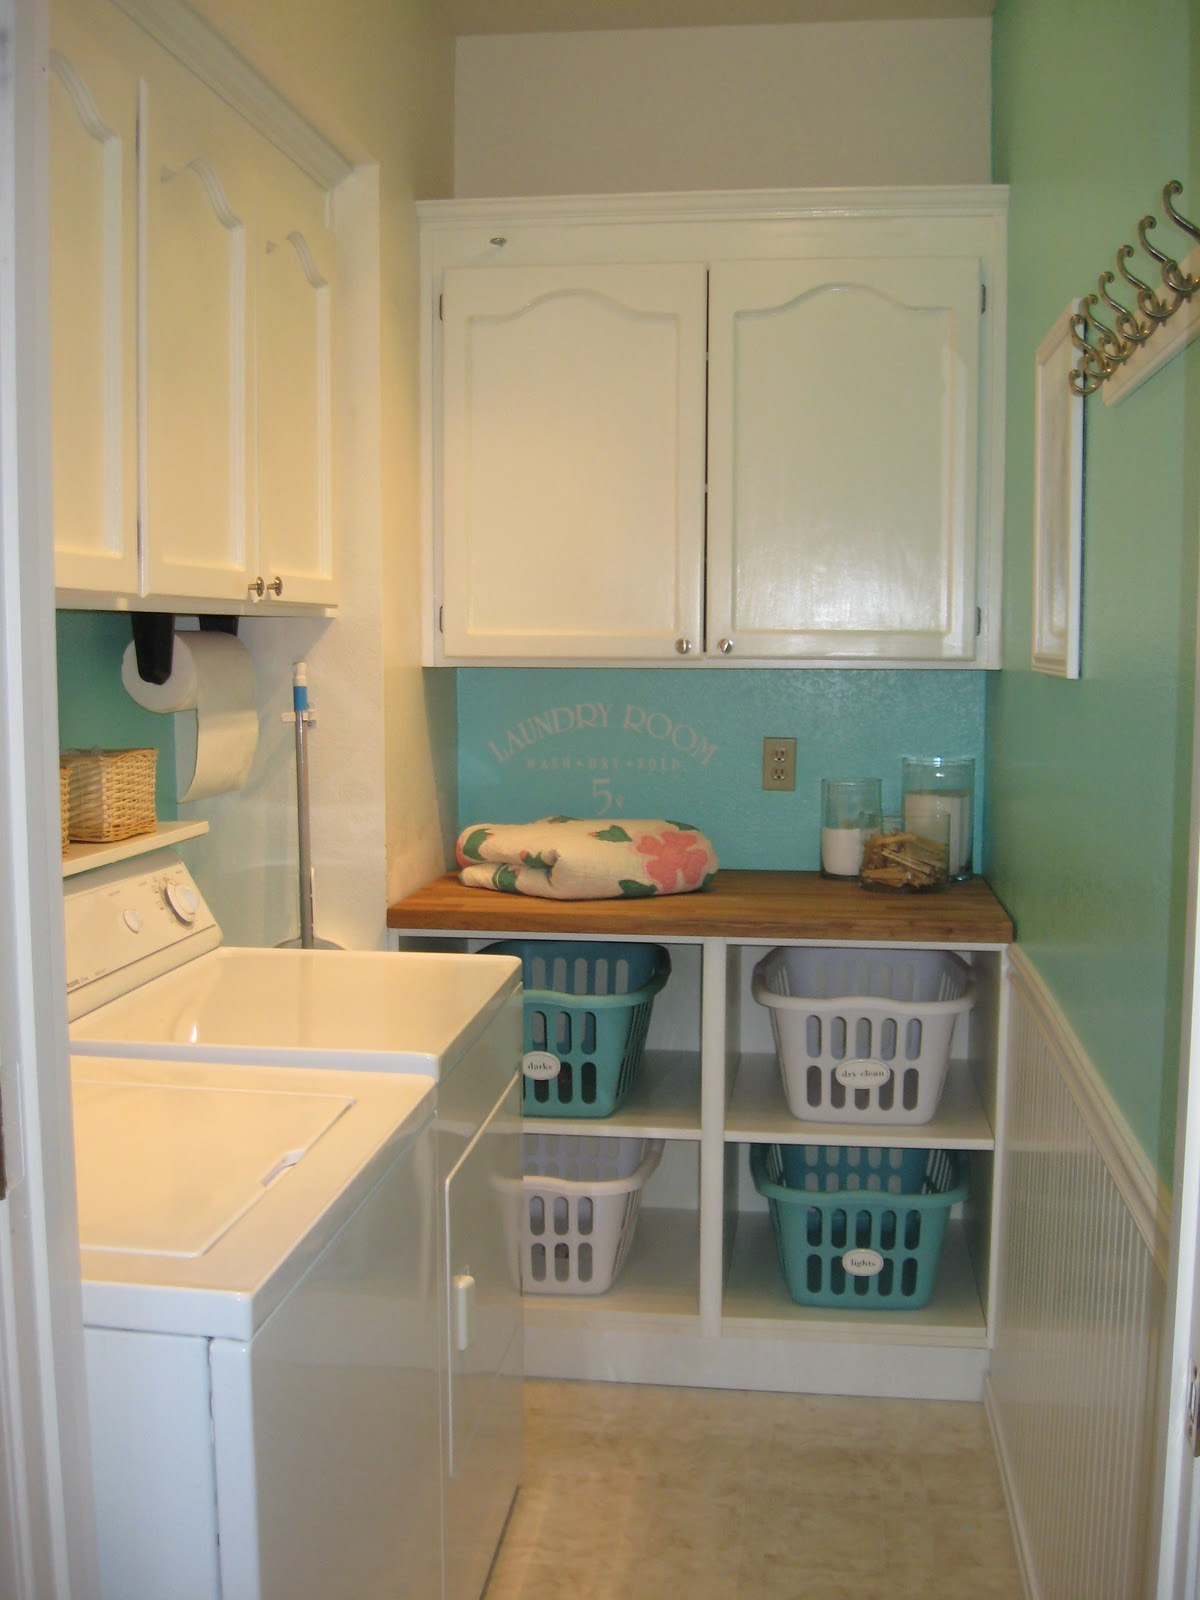 Samsung best dressed laundry room contest nominee home stories a to z - Laundry room small space ideas paint ...